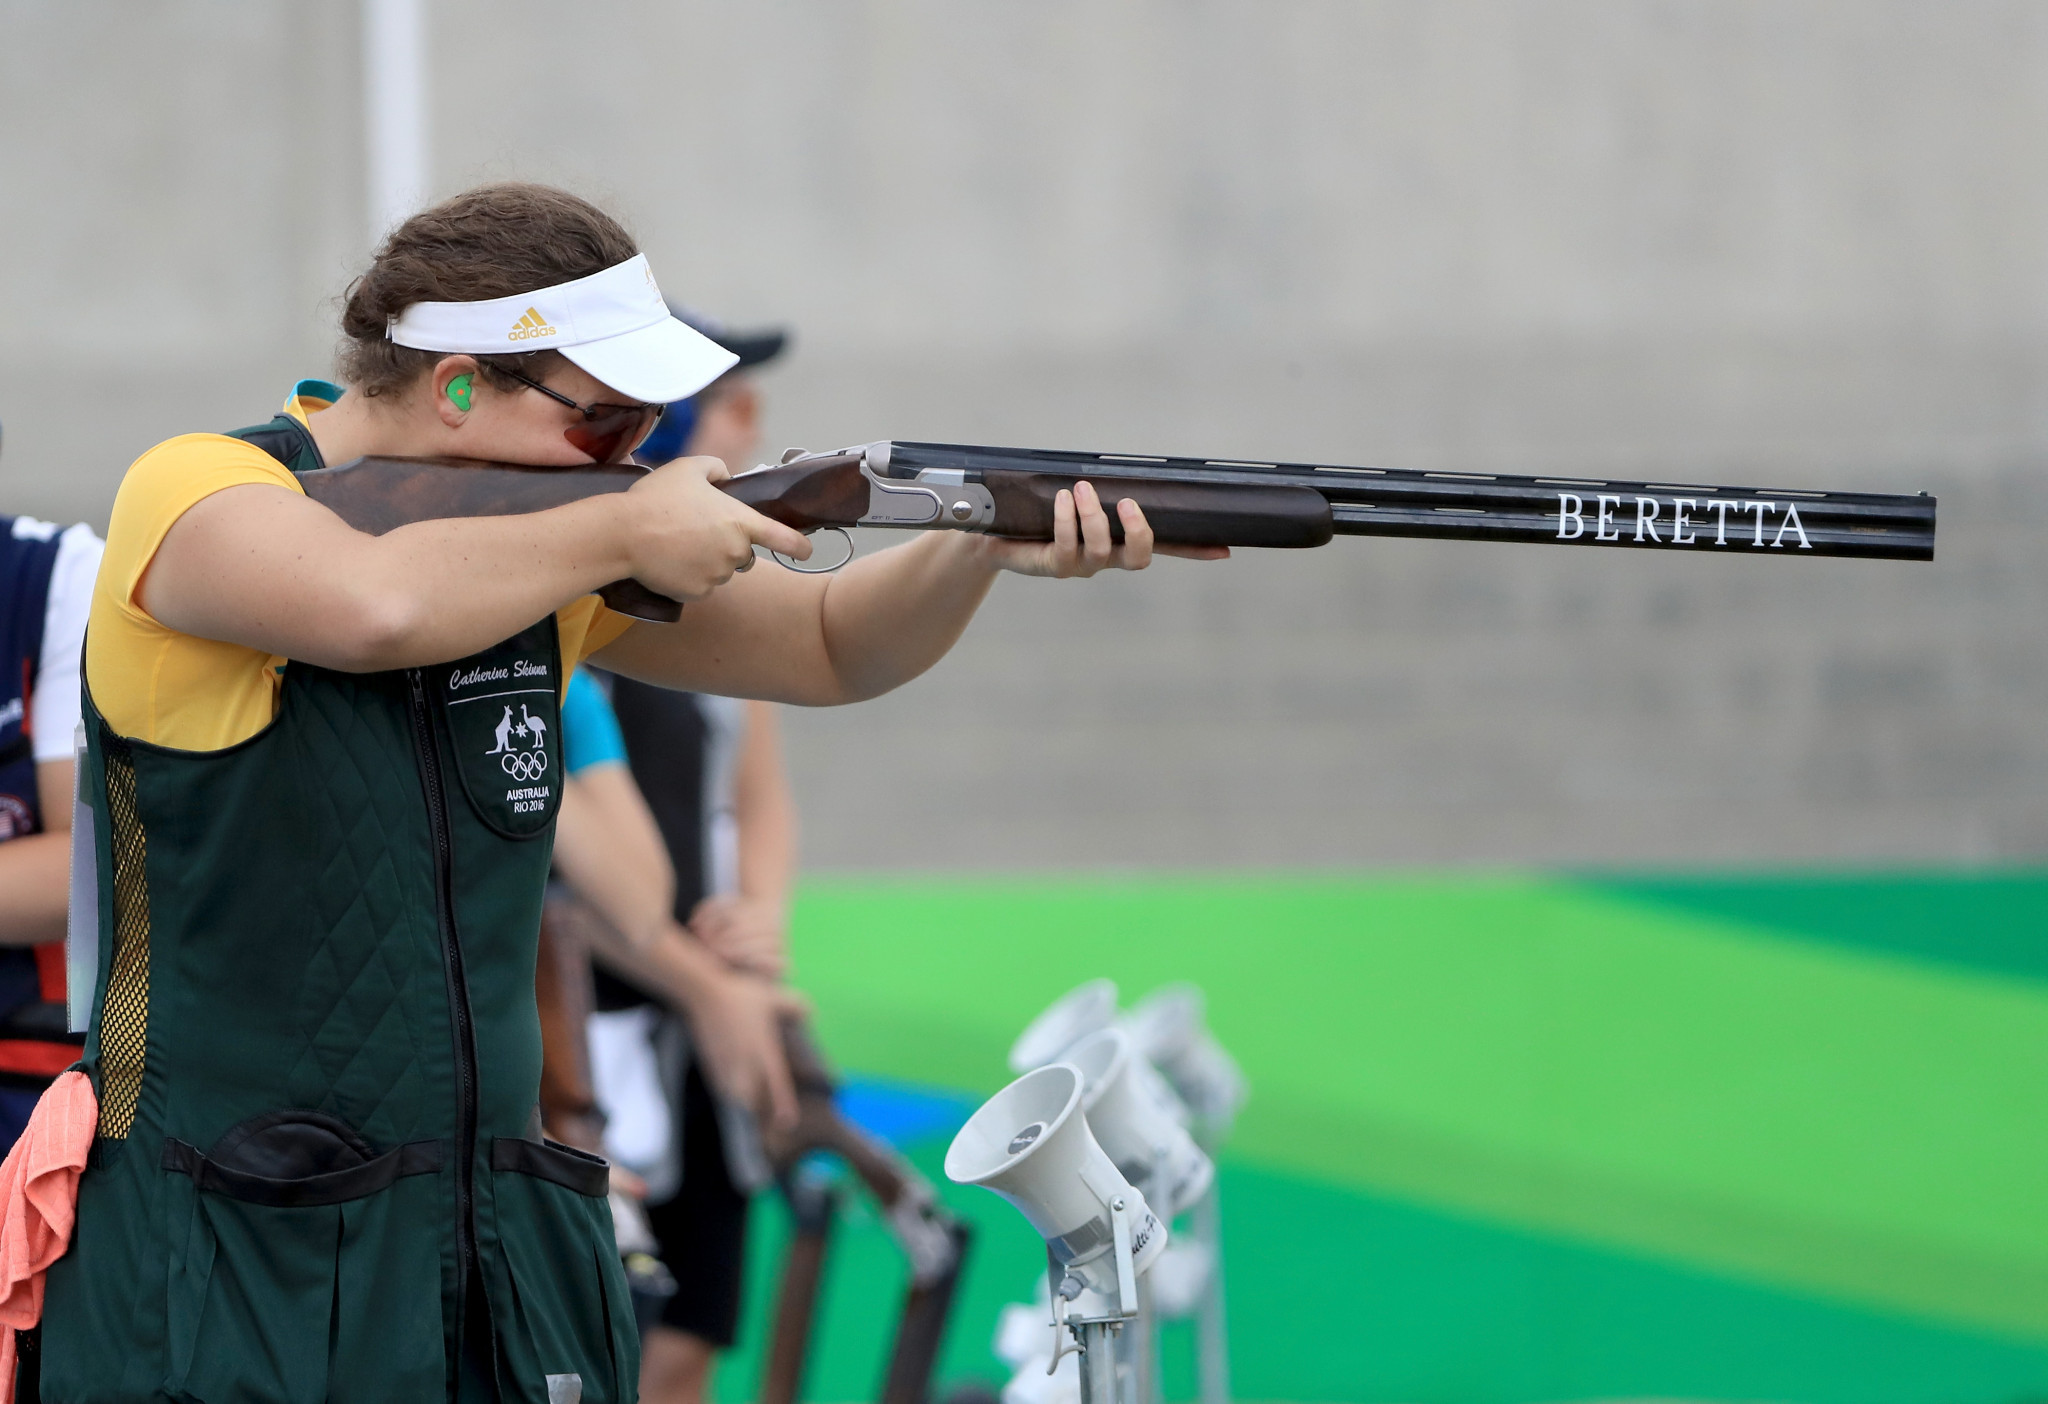 Australia's Catherine Skinner finished second on the first day of women's trap qualification ©Getty Images